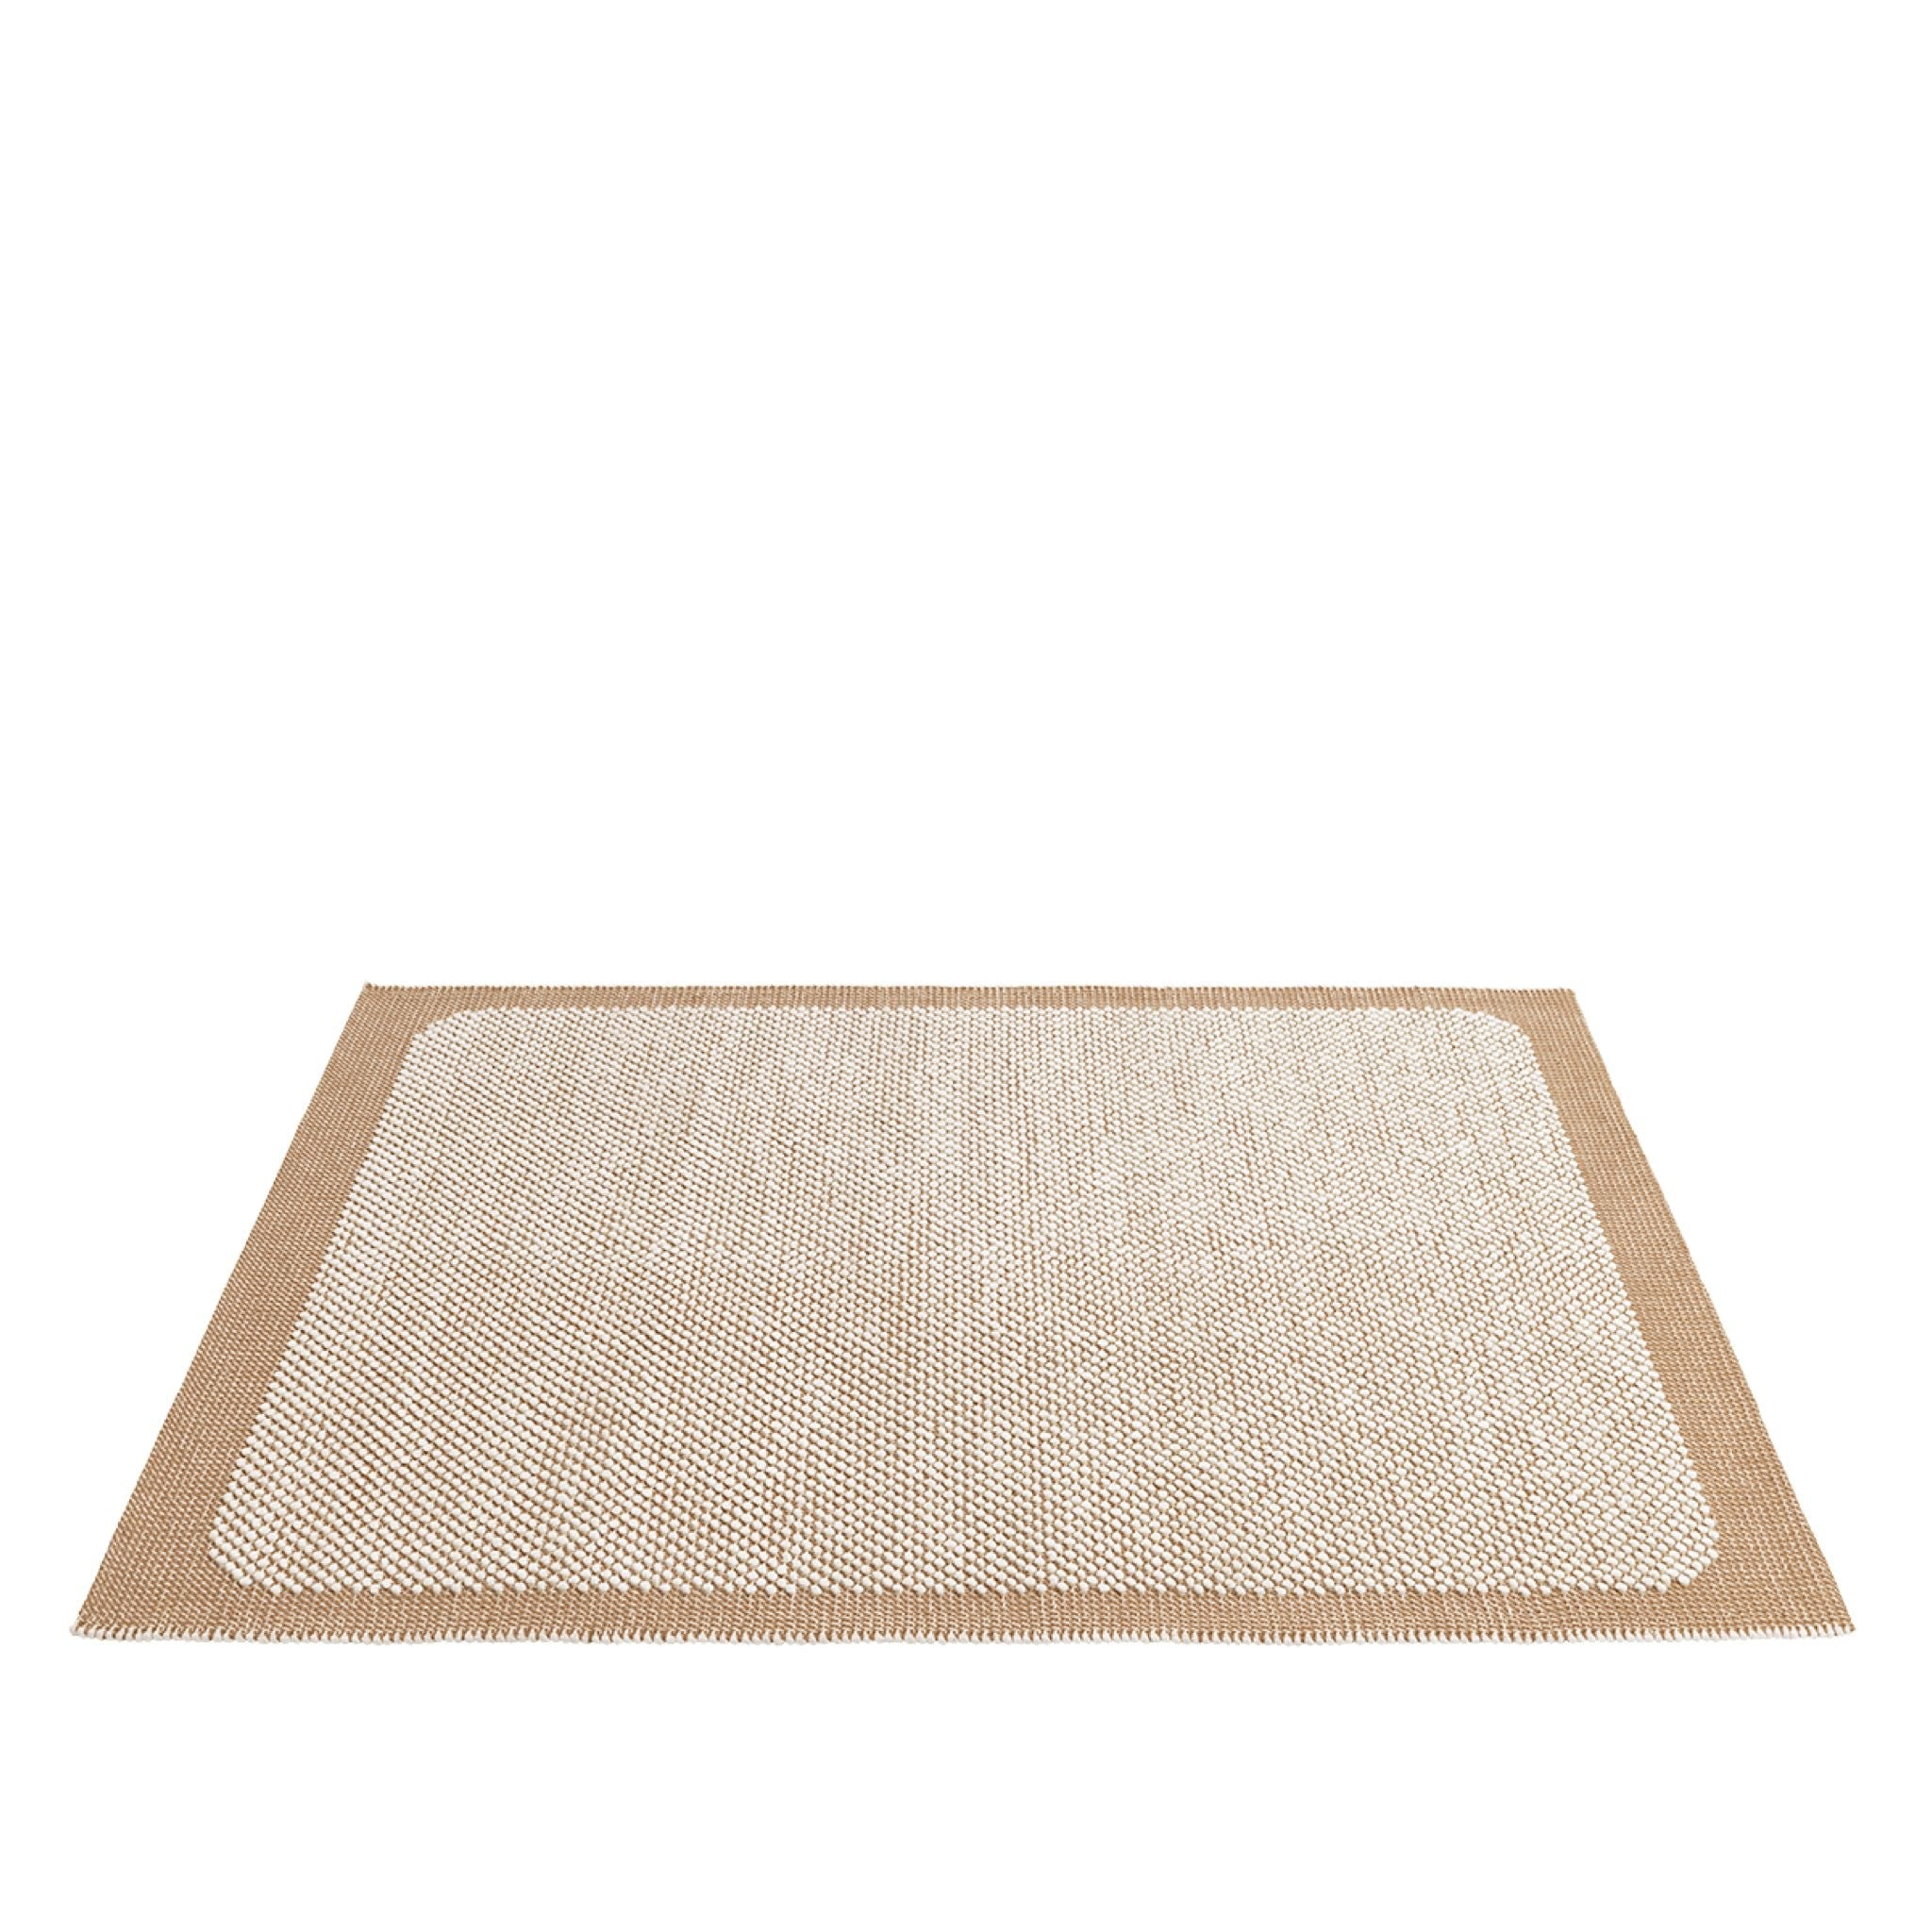 Pebble Rug by Muuto